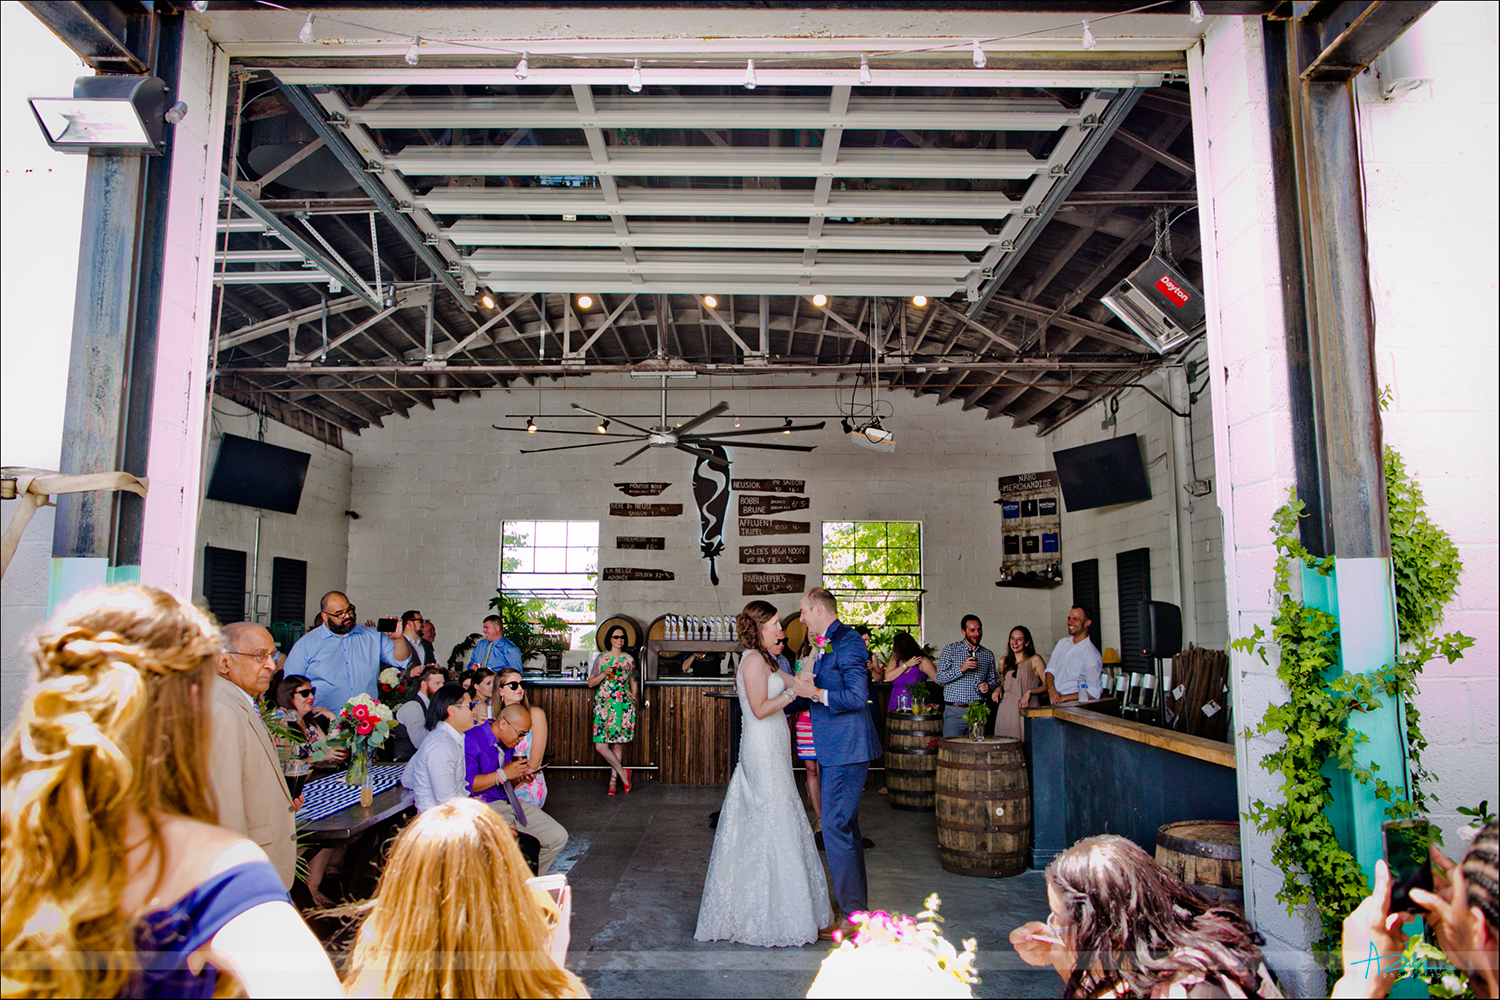 First dance photography at Neuse Brewery in Raleigh, North Carolina